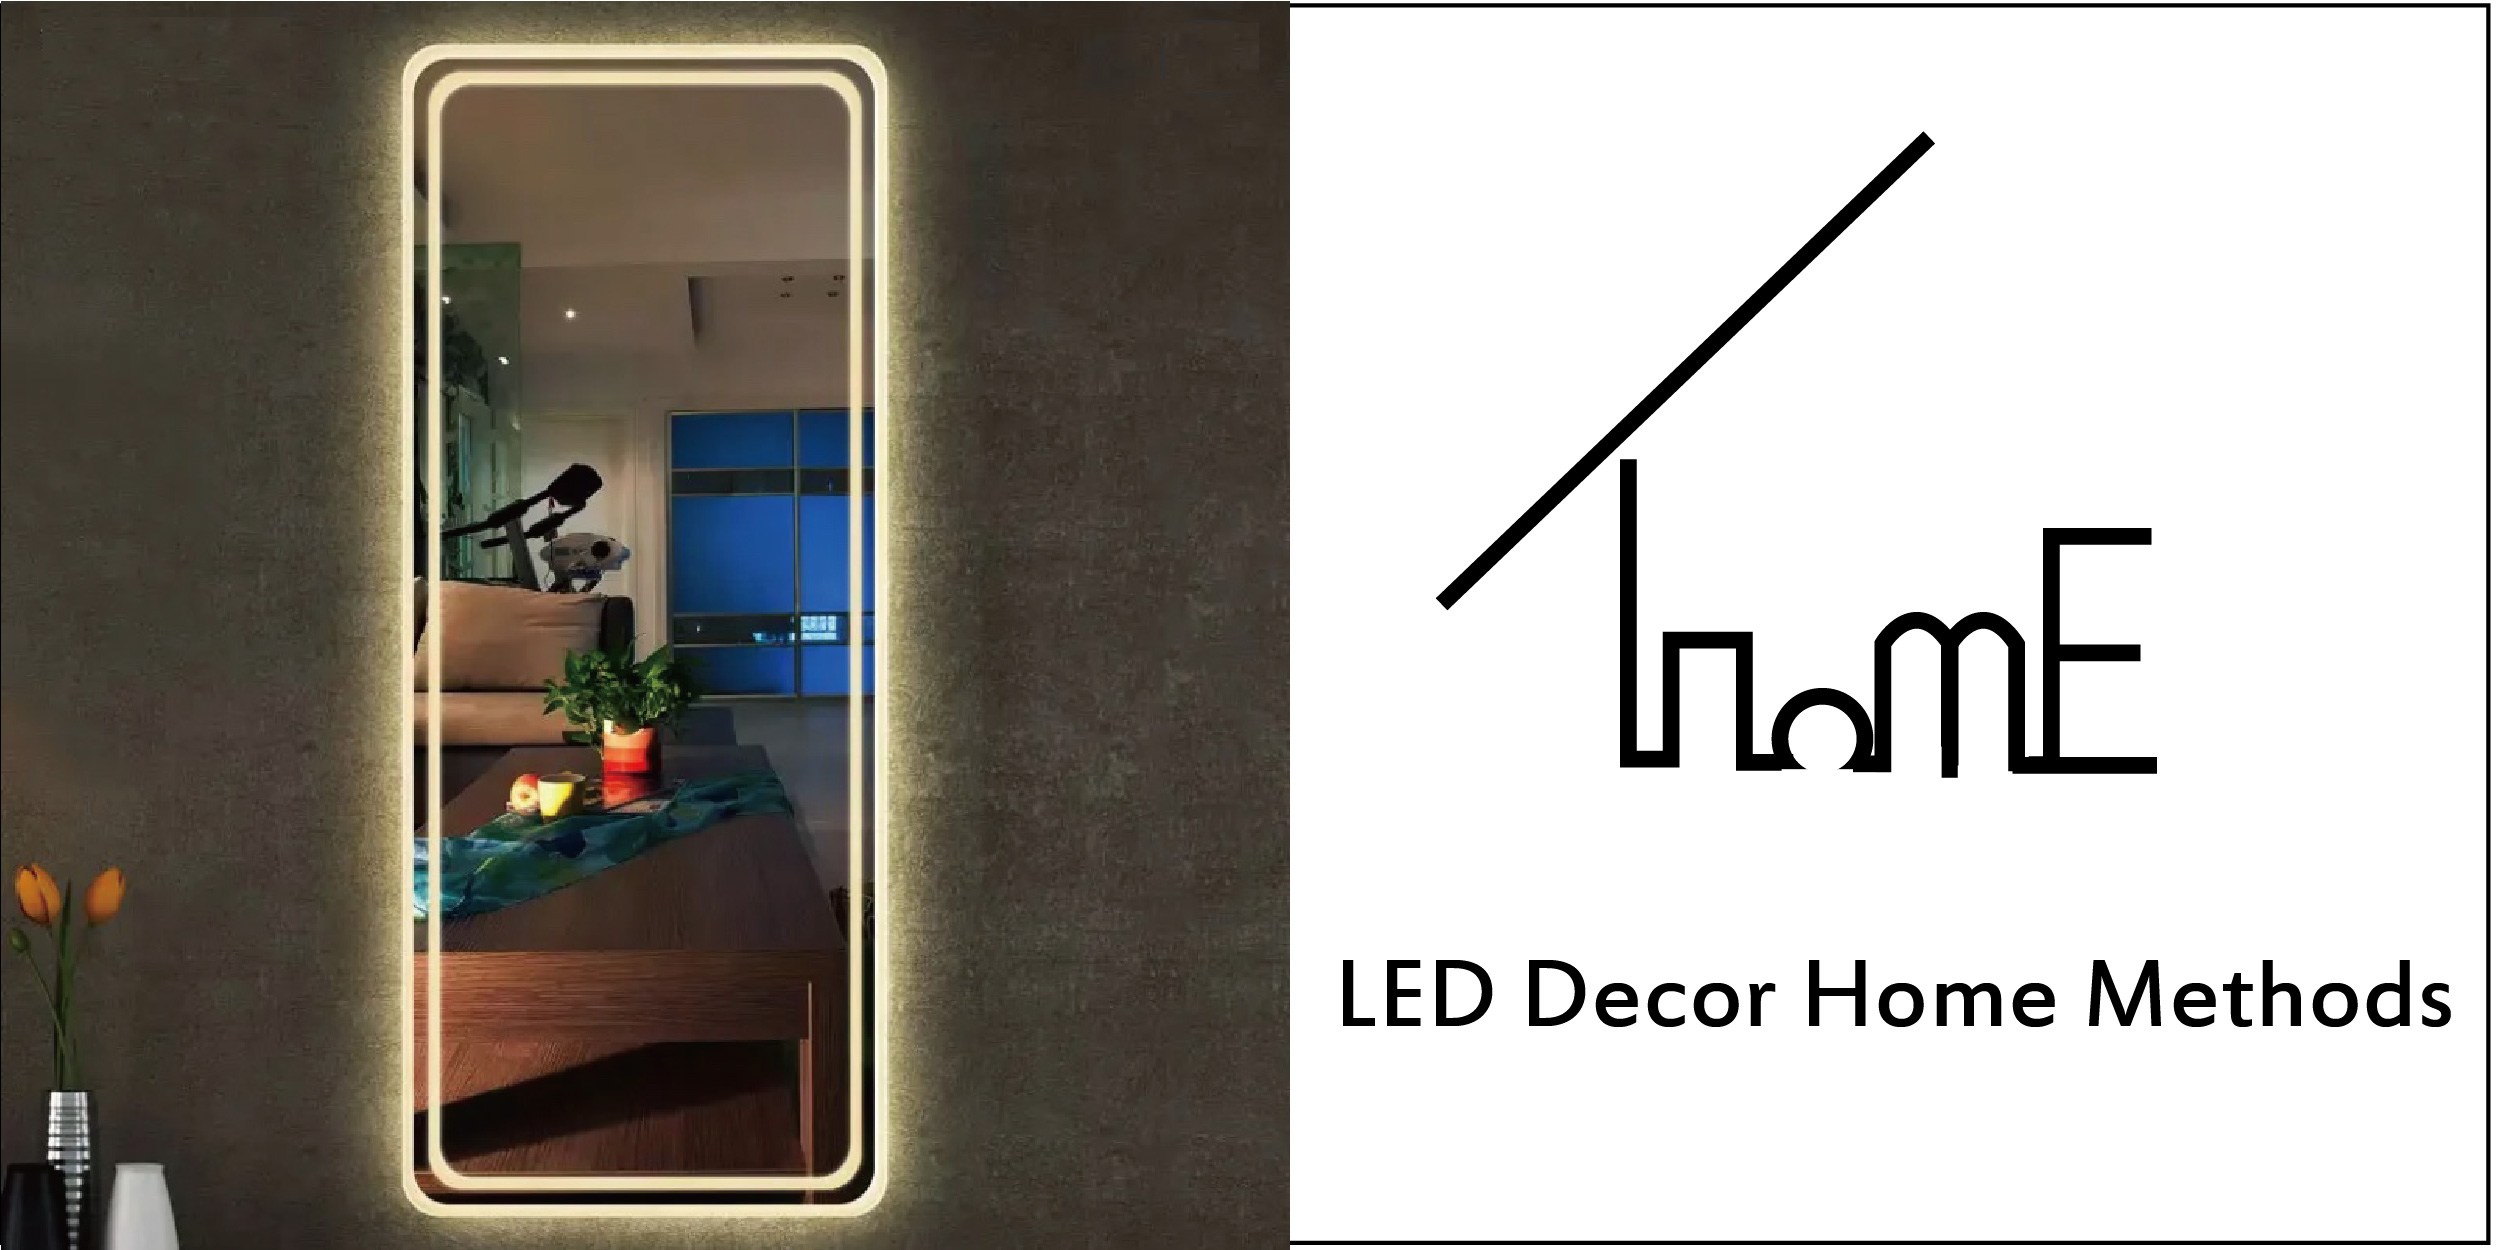 How To Decorate Your HOME With LED Mirror?